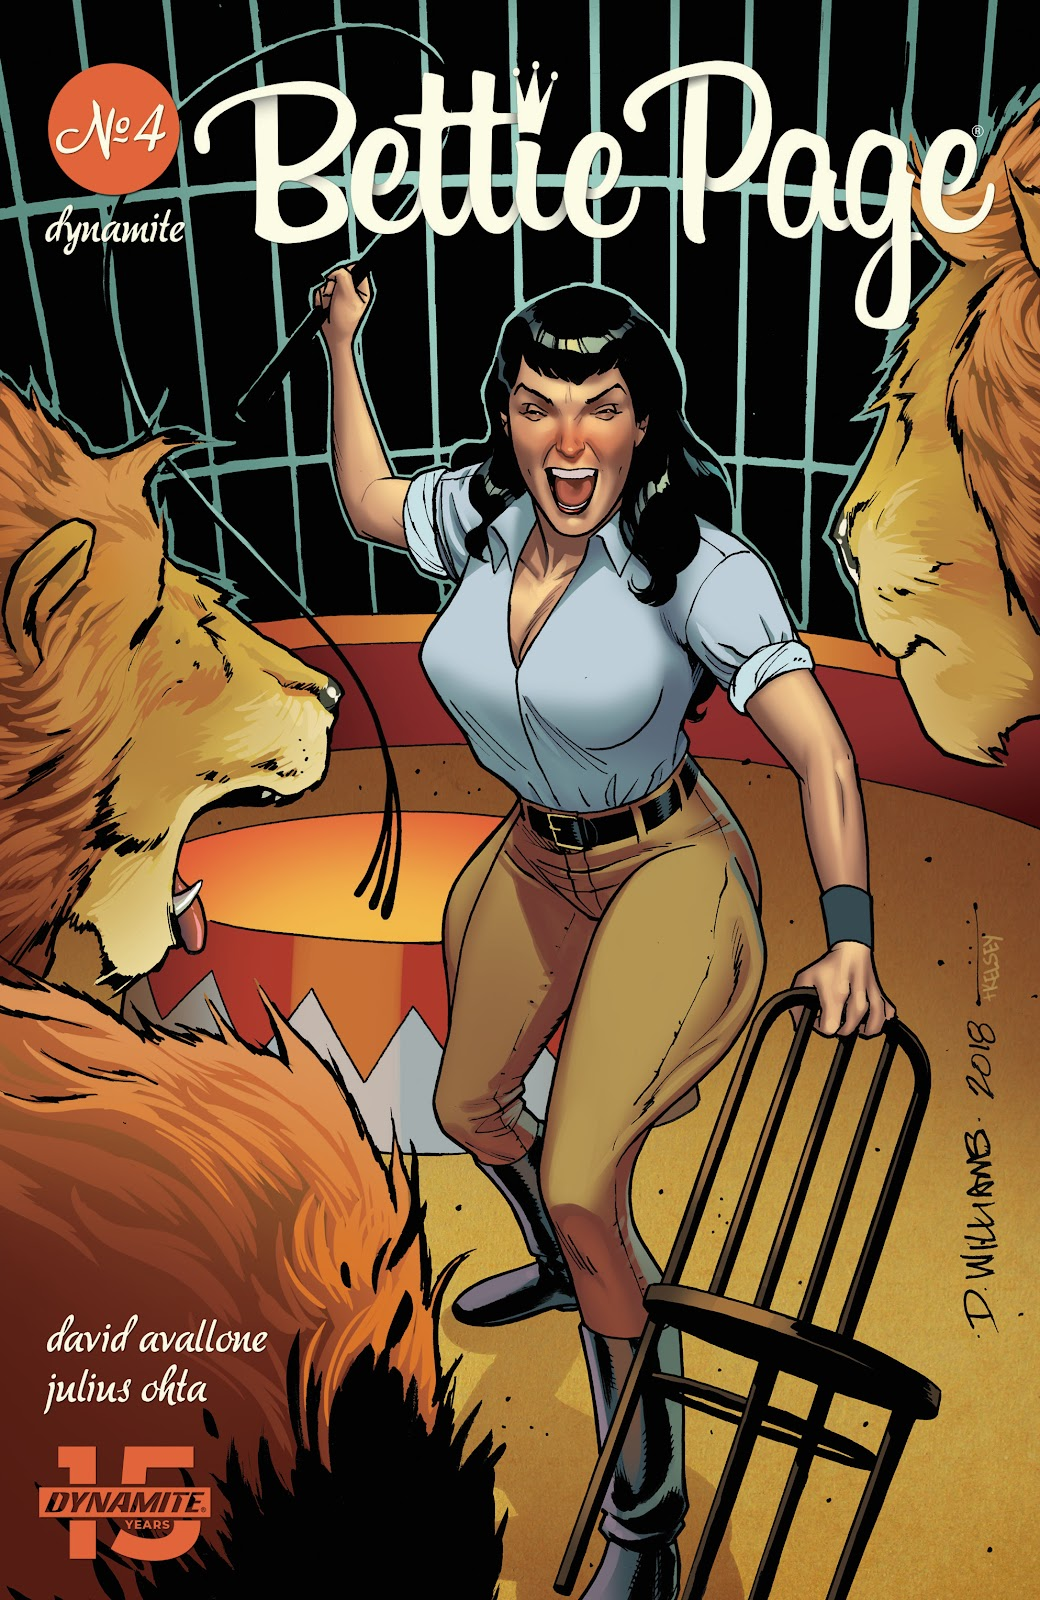 Read online Bettie Page (2018) comic -  Issue #4 - 3